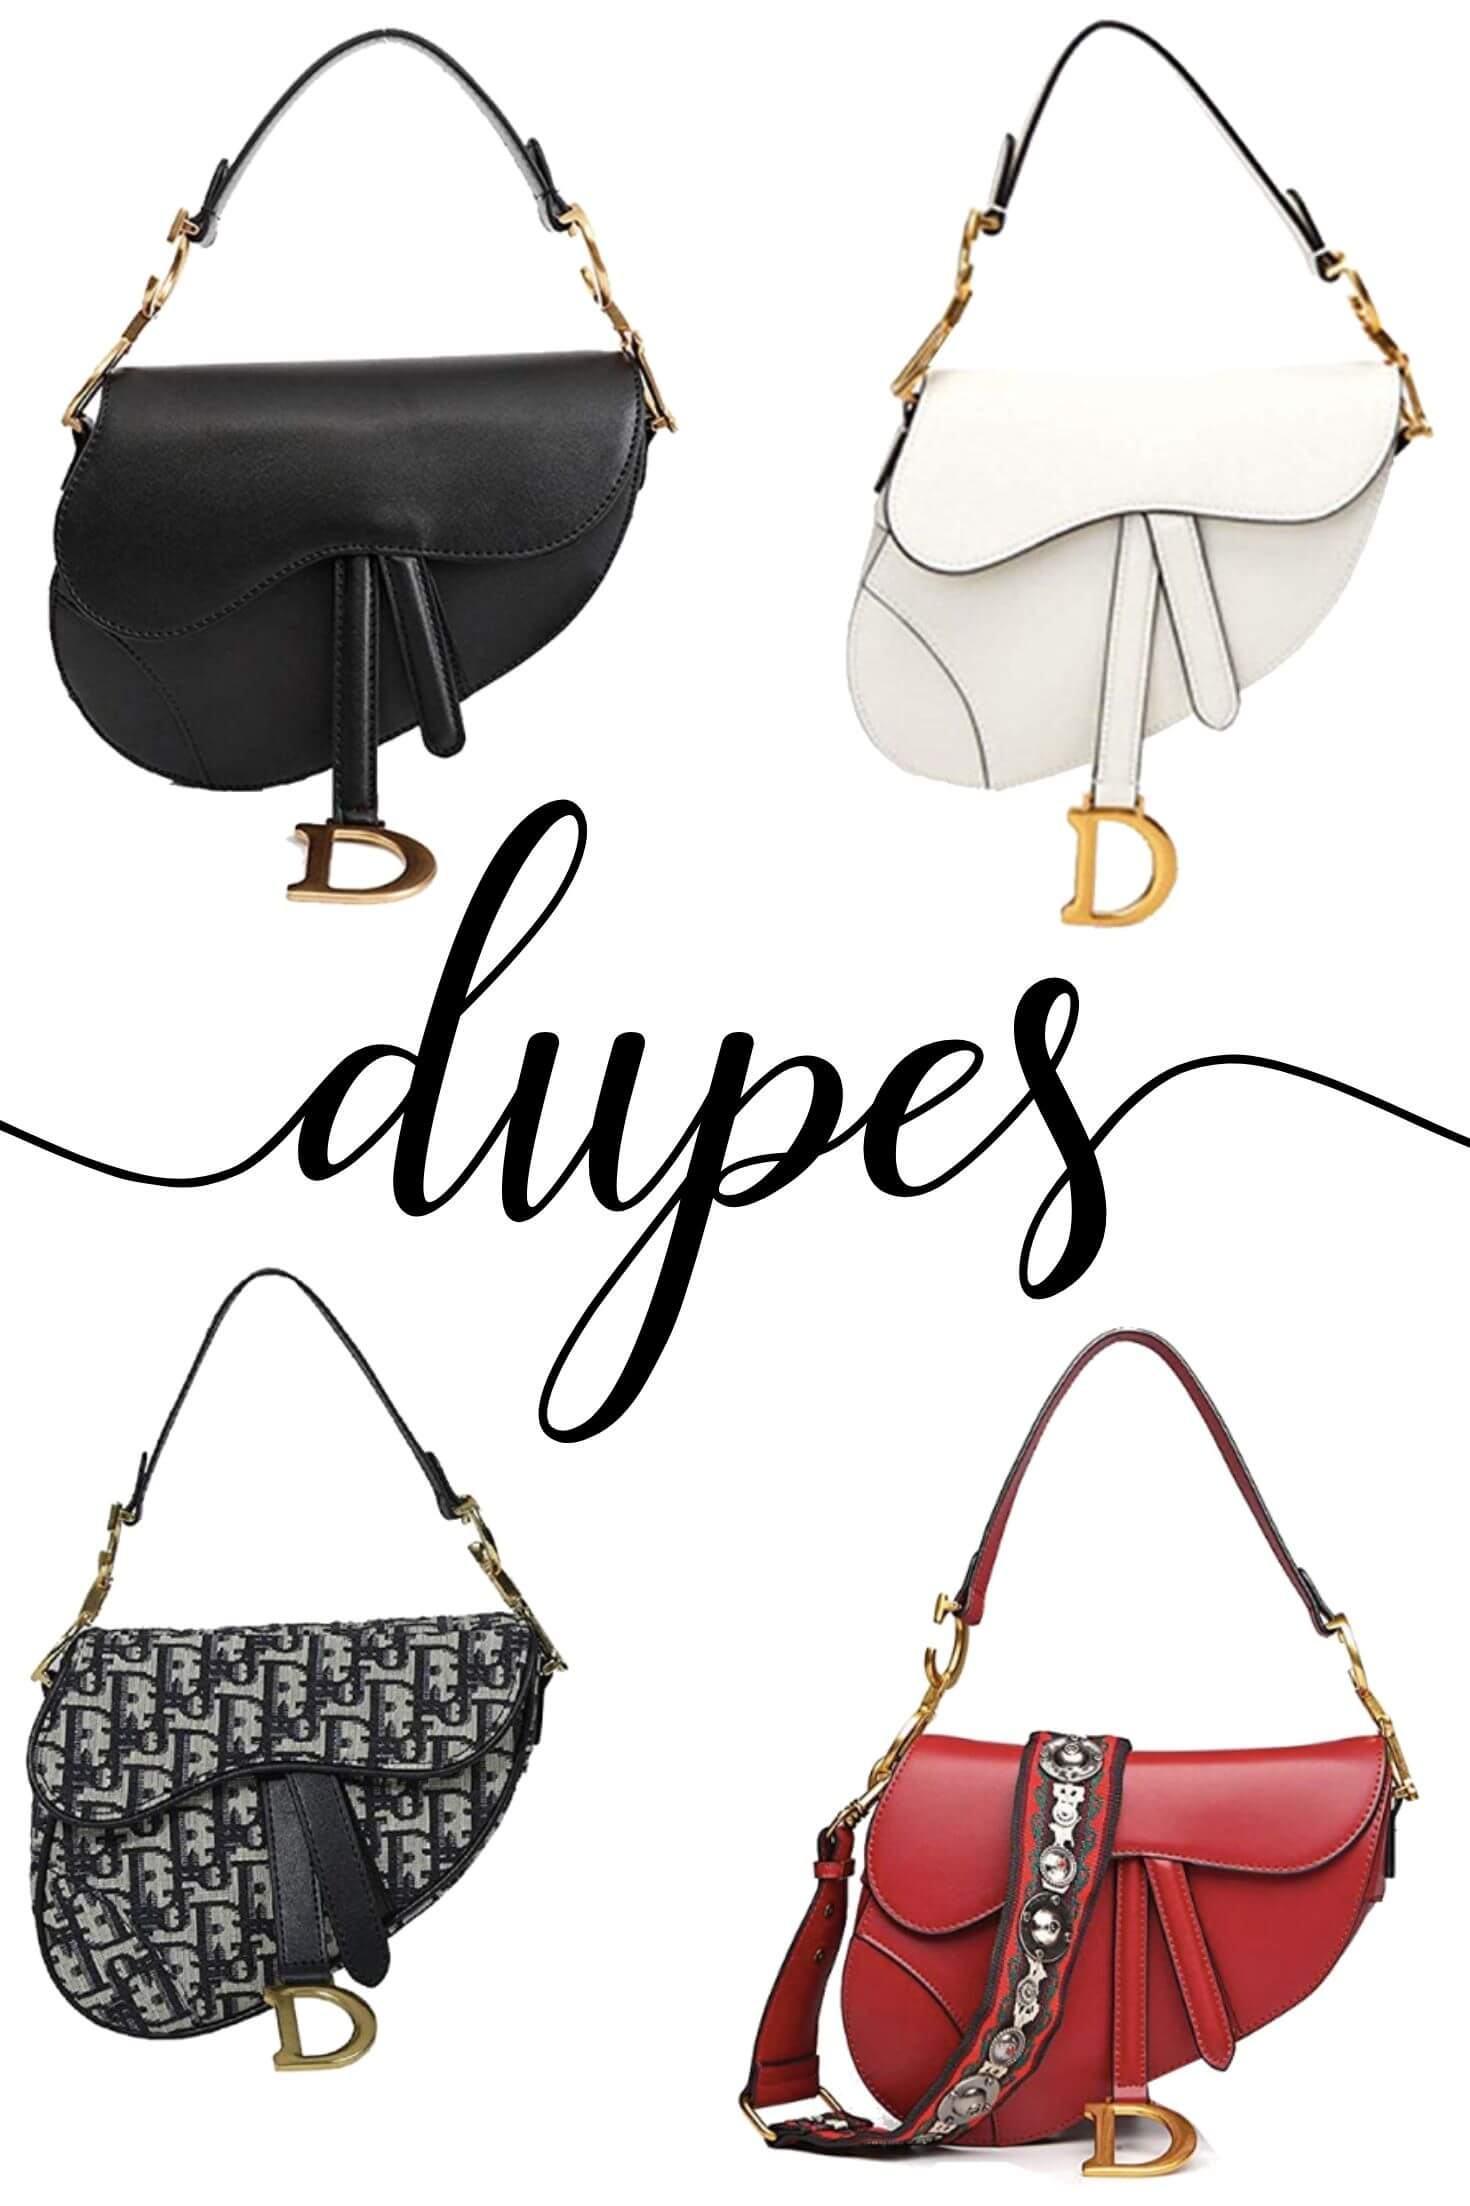 Christian Dior Saddle Bag Dupes 1 of 7